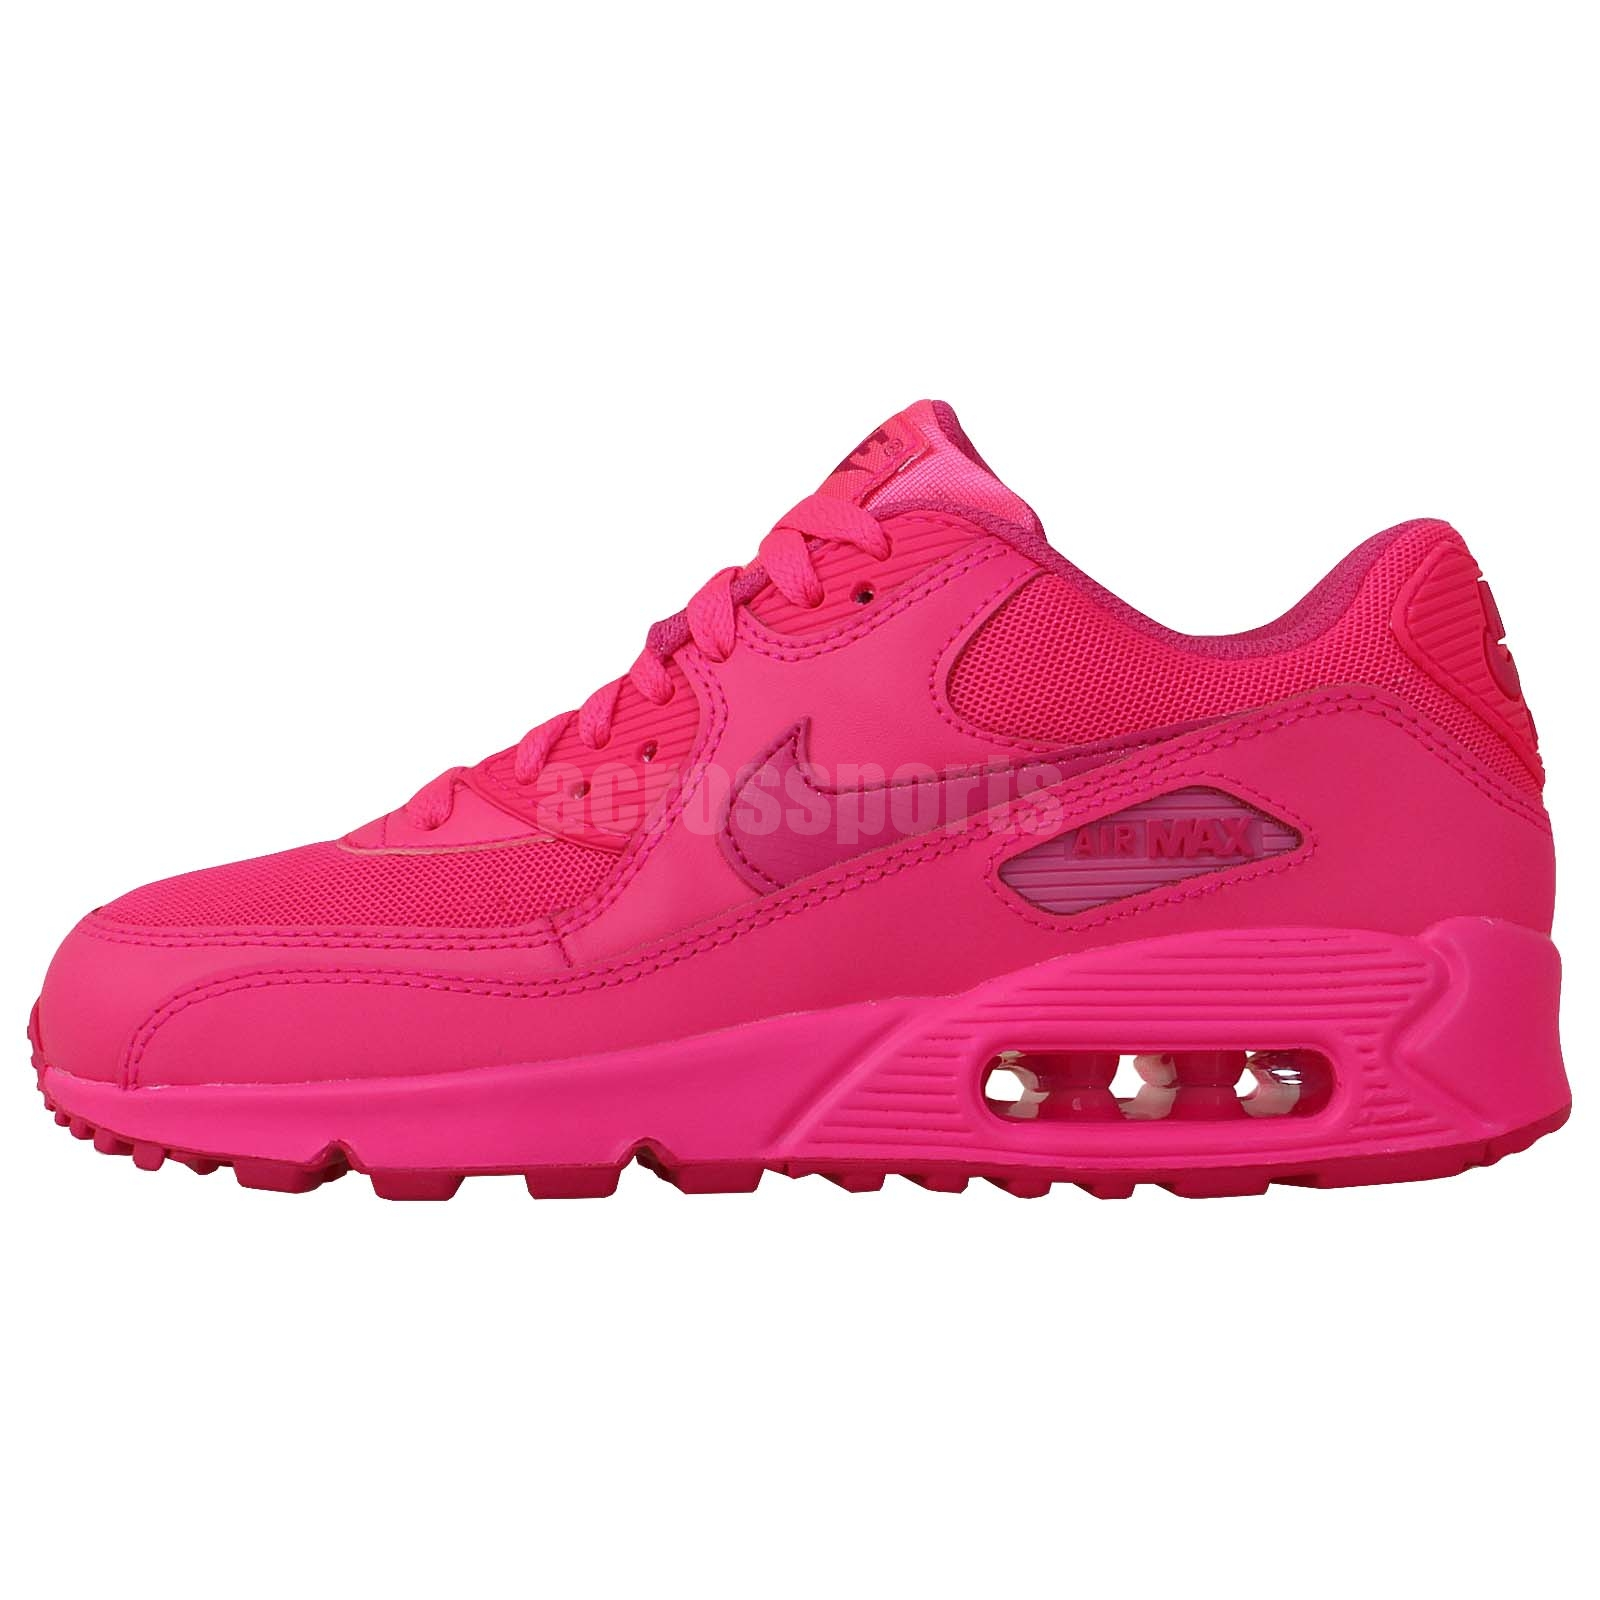 nike air max 90 2007 gs pink 2014 girls youth womens. Black Bedroom Furniture Sets. Home Design Ideas